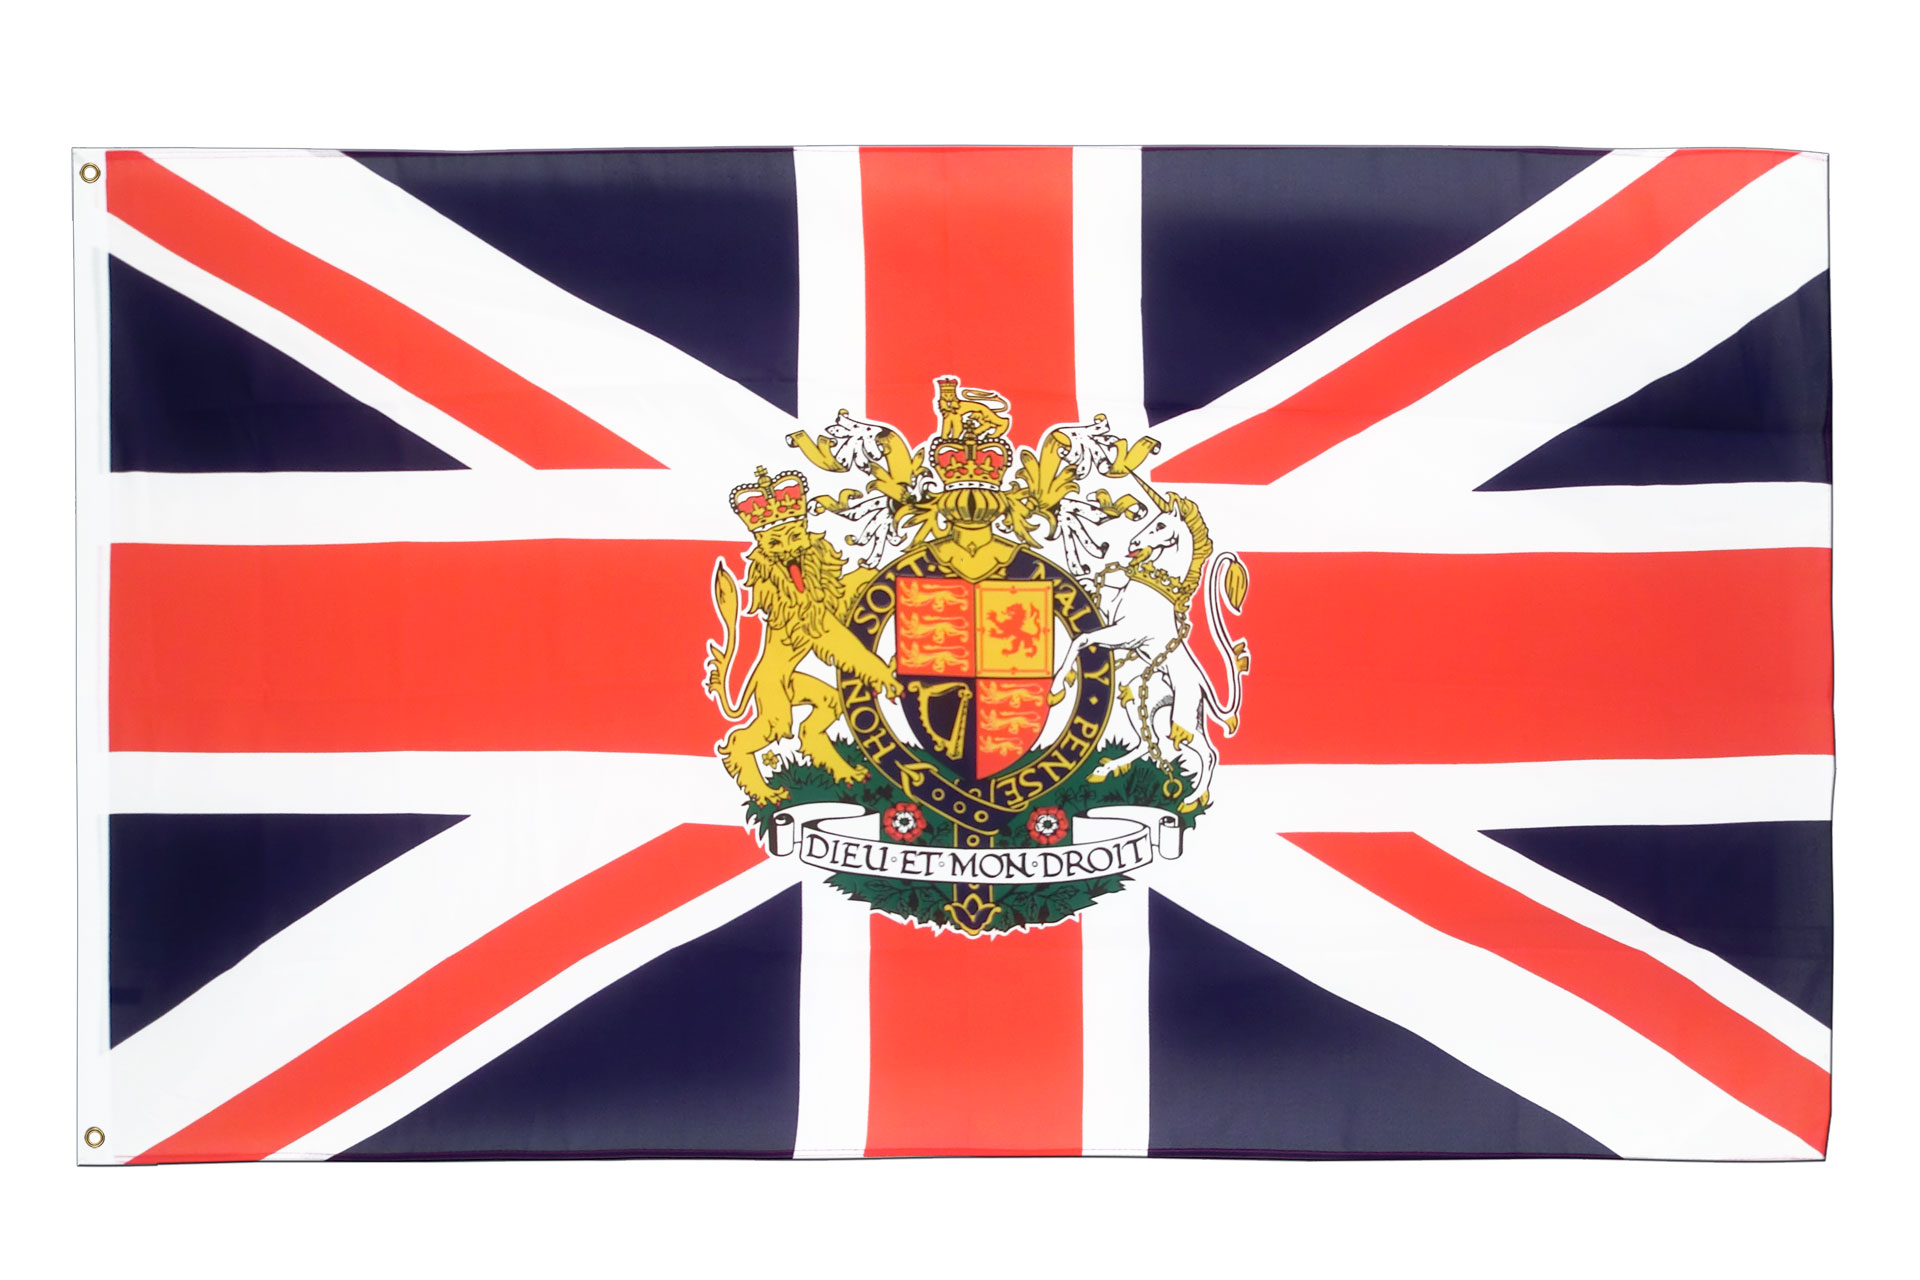 Great Britain with crest Flag - Buy british flag 3x5 ft: https://www.royal-flags.co.uk/great-britain-with-crest-flag-1708.html